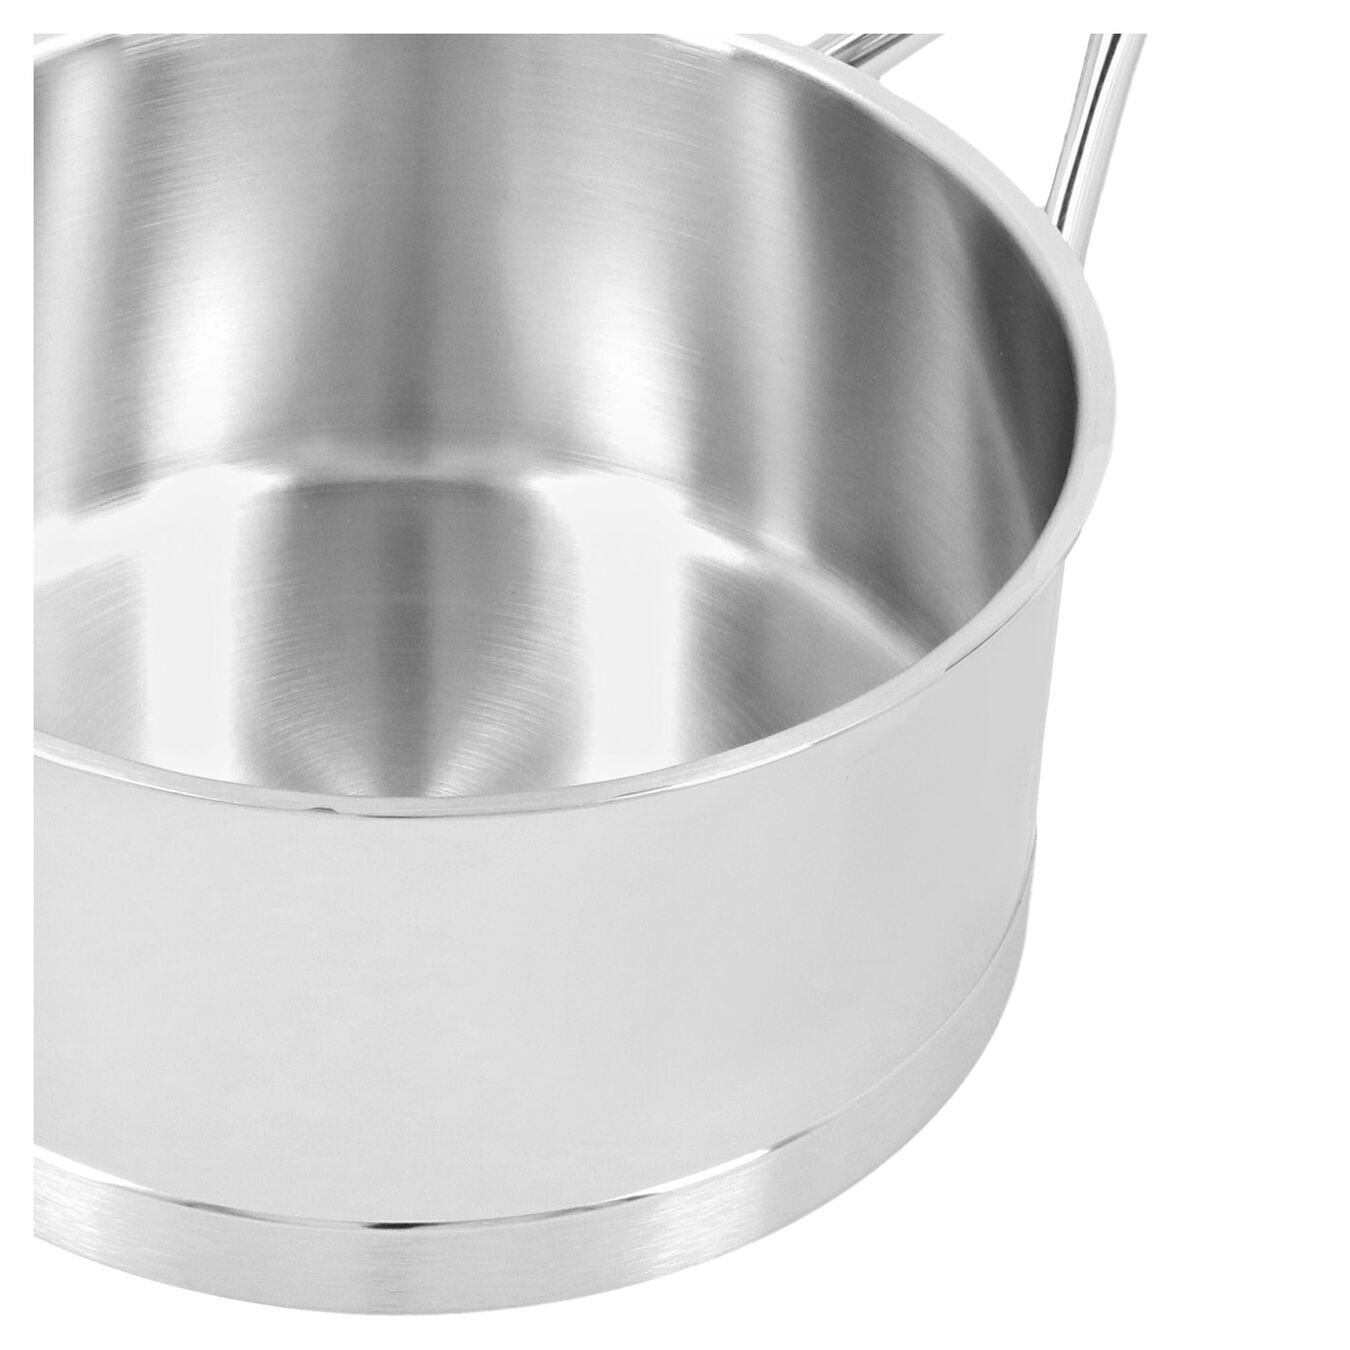 1.5 l round Sauce pan with lid, silver,,large 3